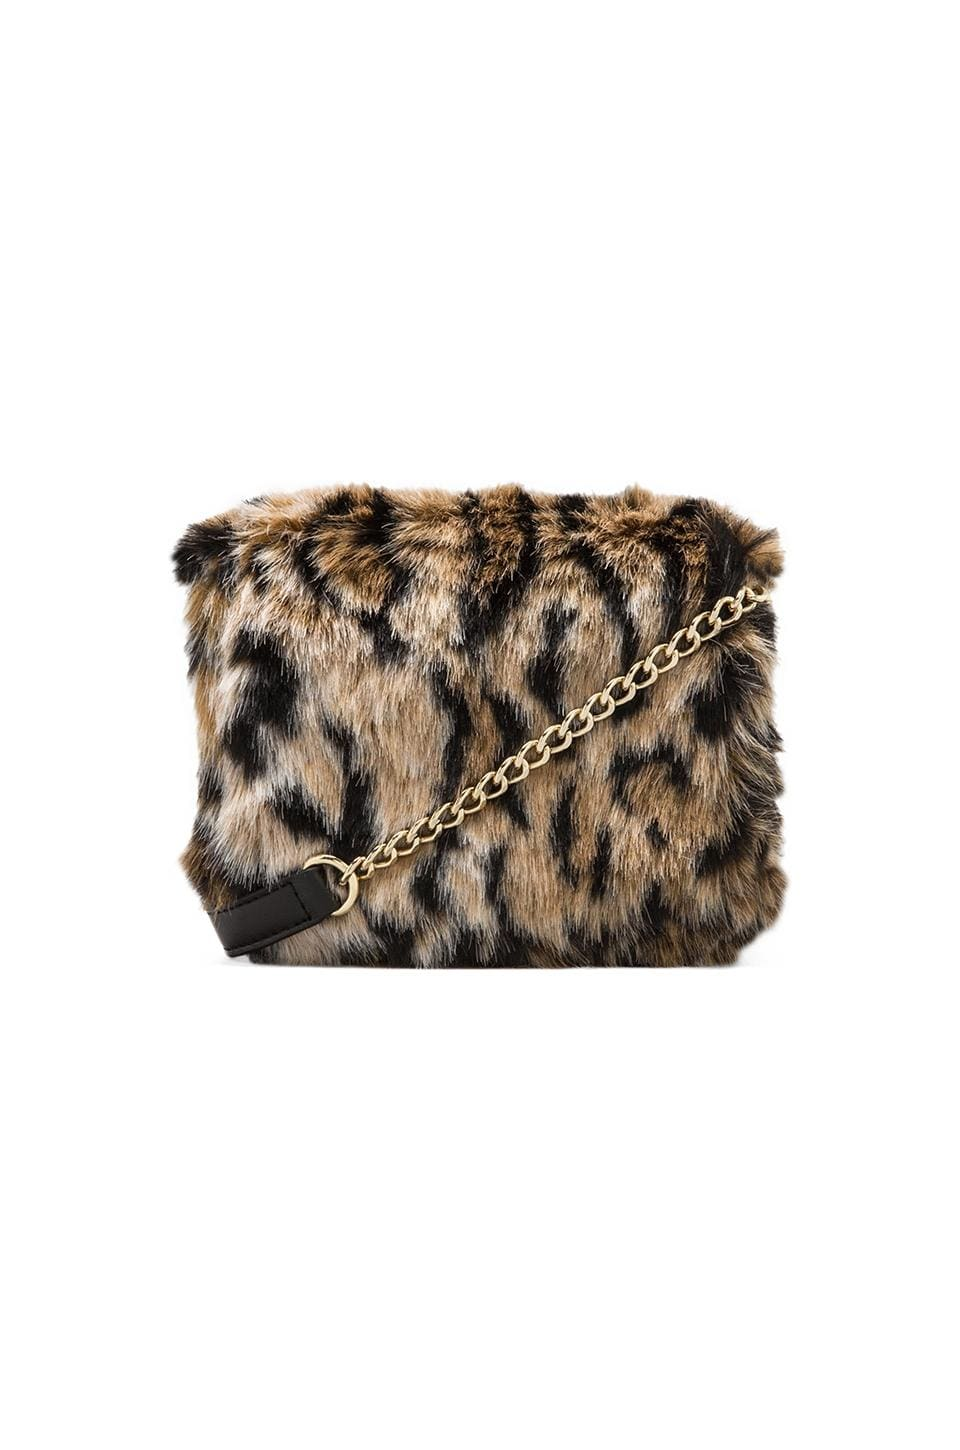 Juicy Couture Hollywood Hills Faux Fur Mini G in Leopard